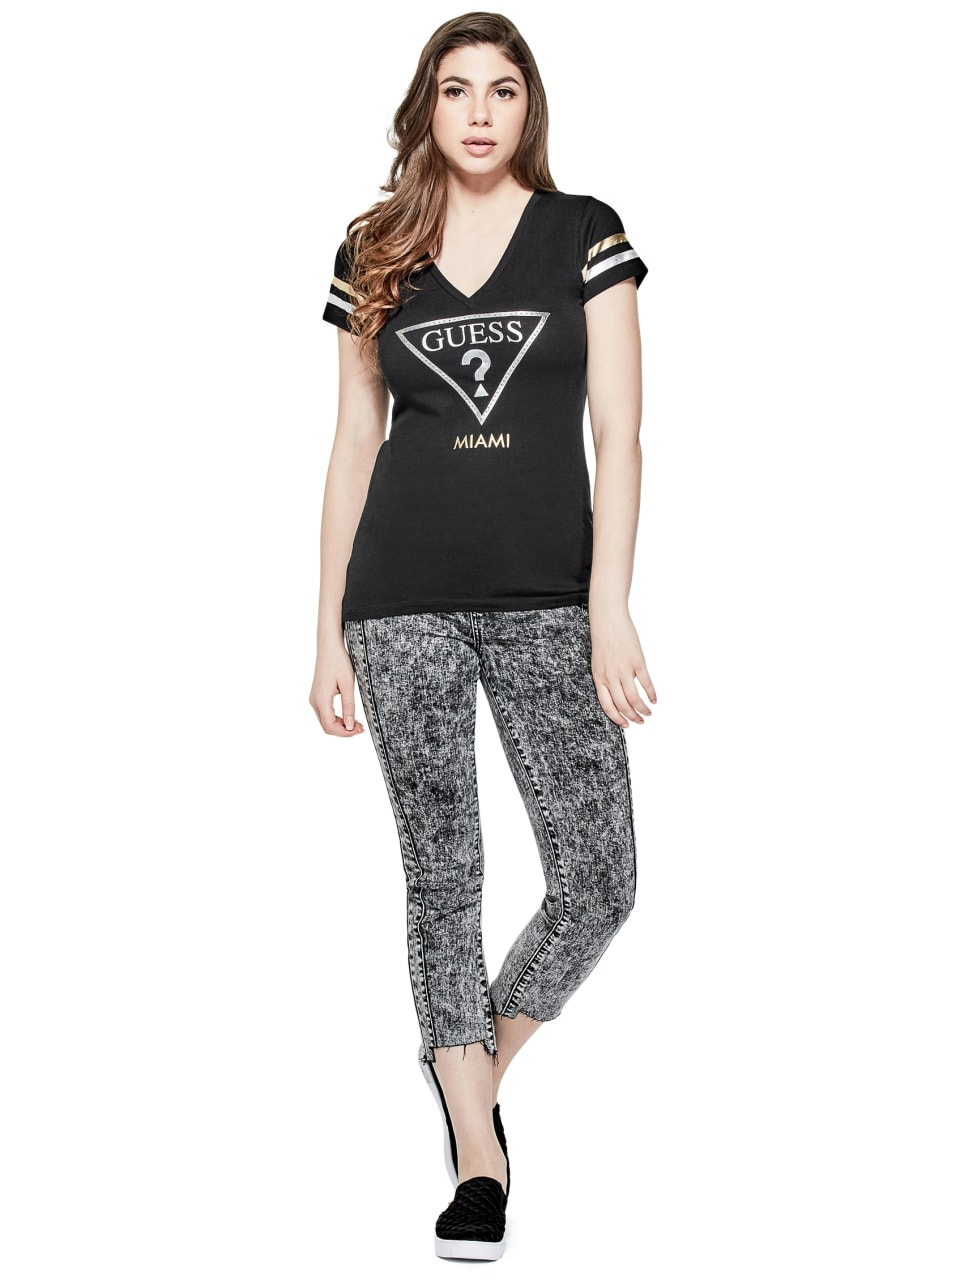 GUESS-Factory-Women-039-s-Miami-City-V-Neck-Varsity-Short-Sleeve-Tee thumbnail 6